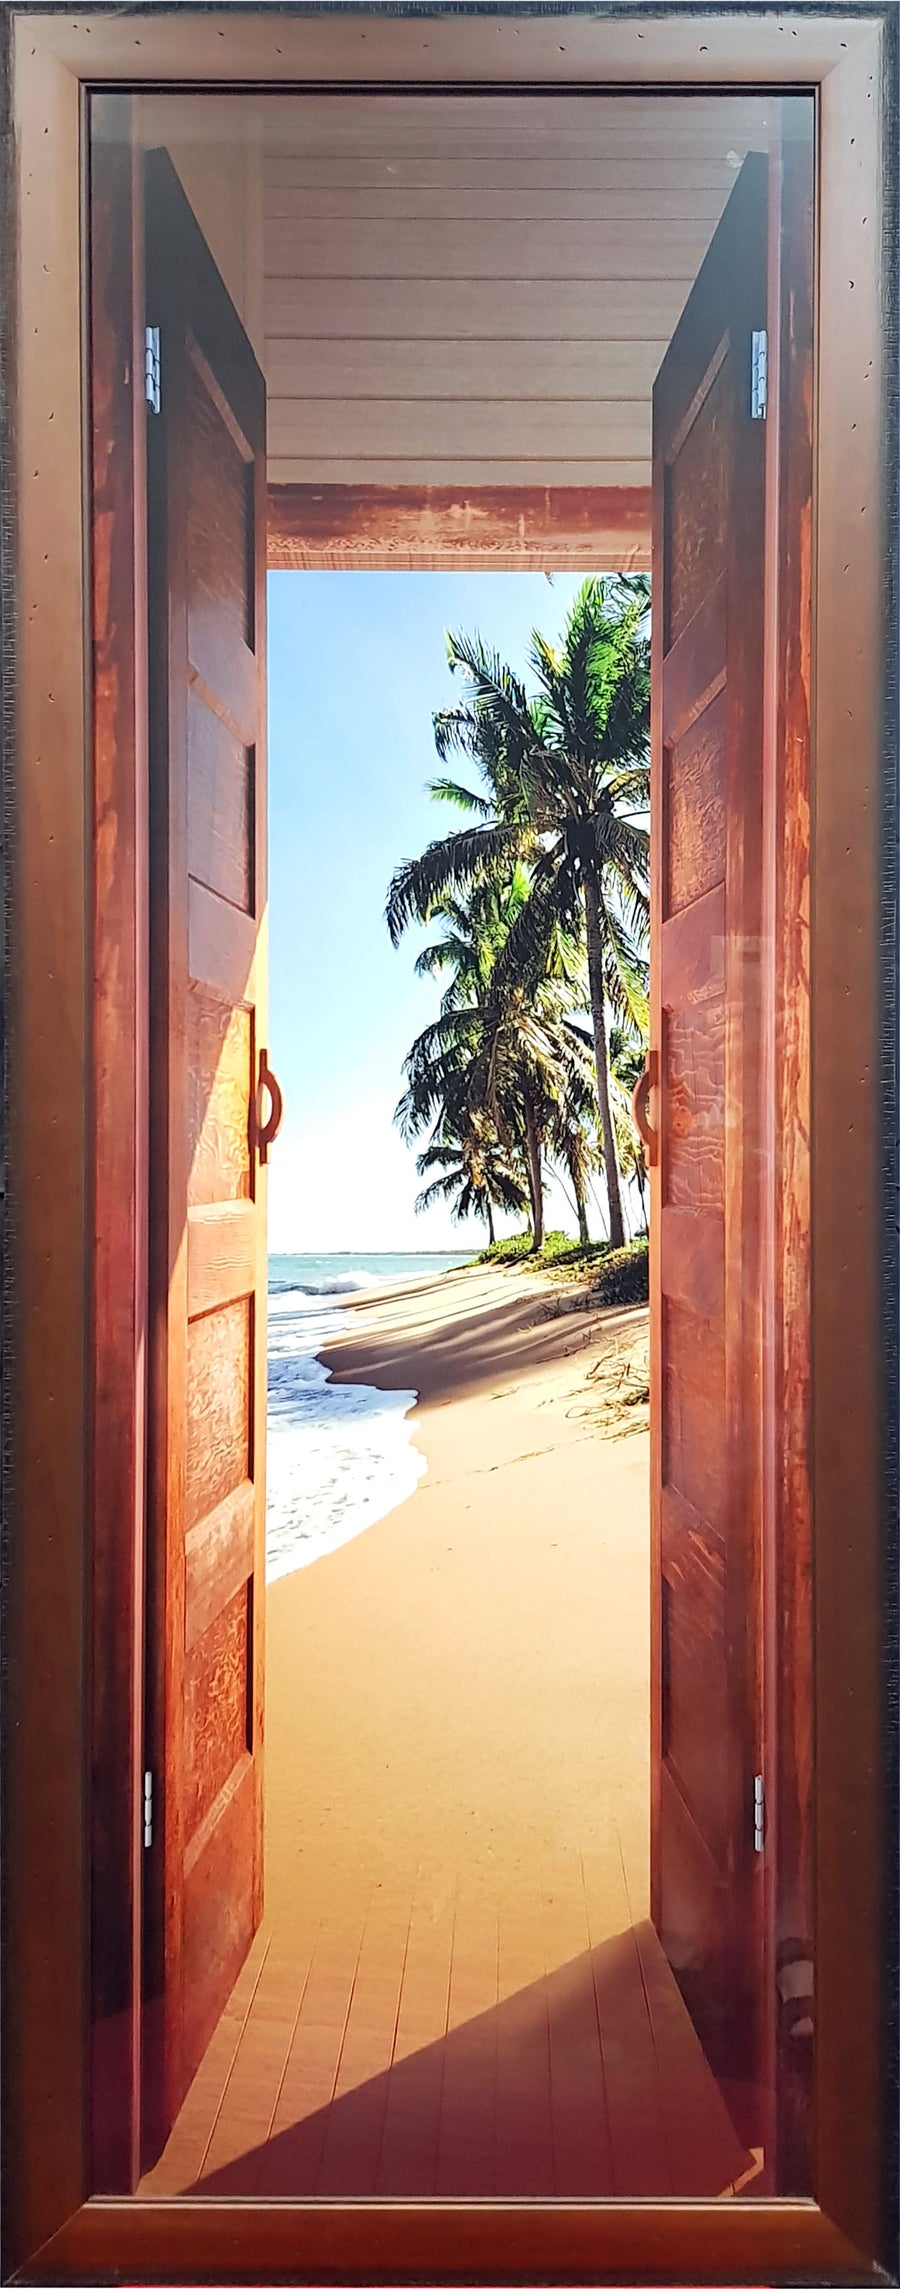 Framed Print of Door to Beach